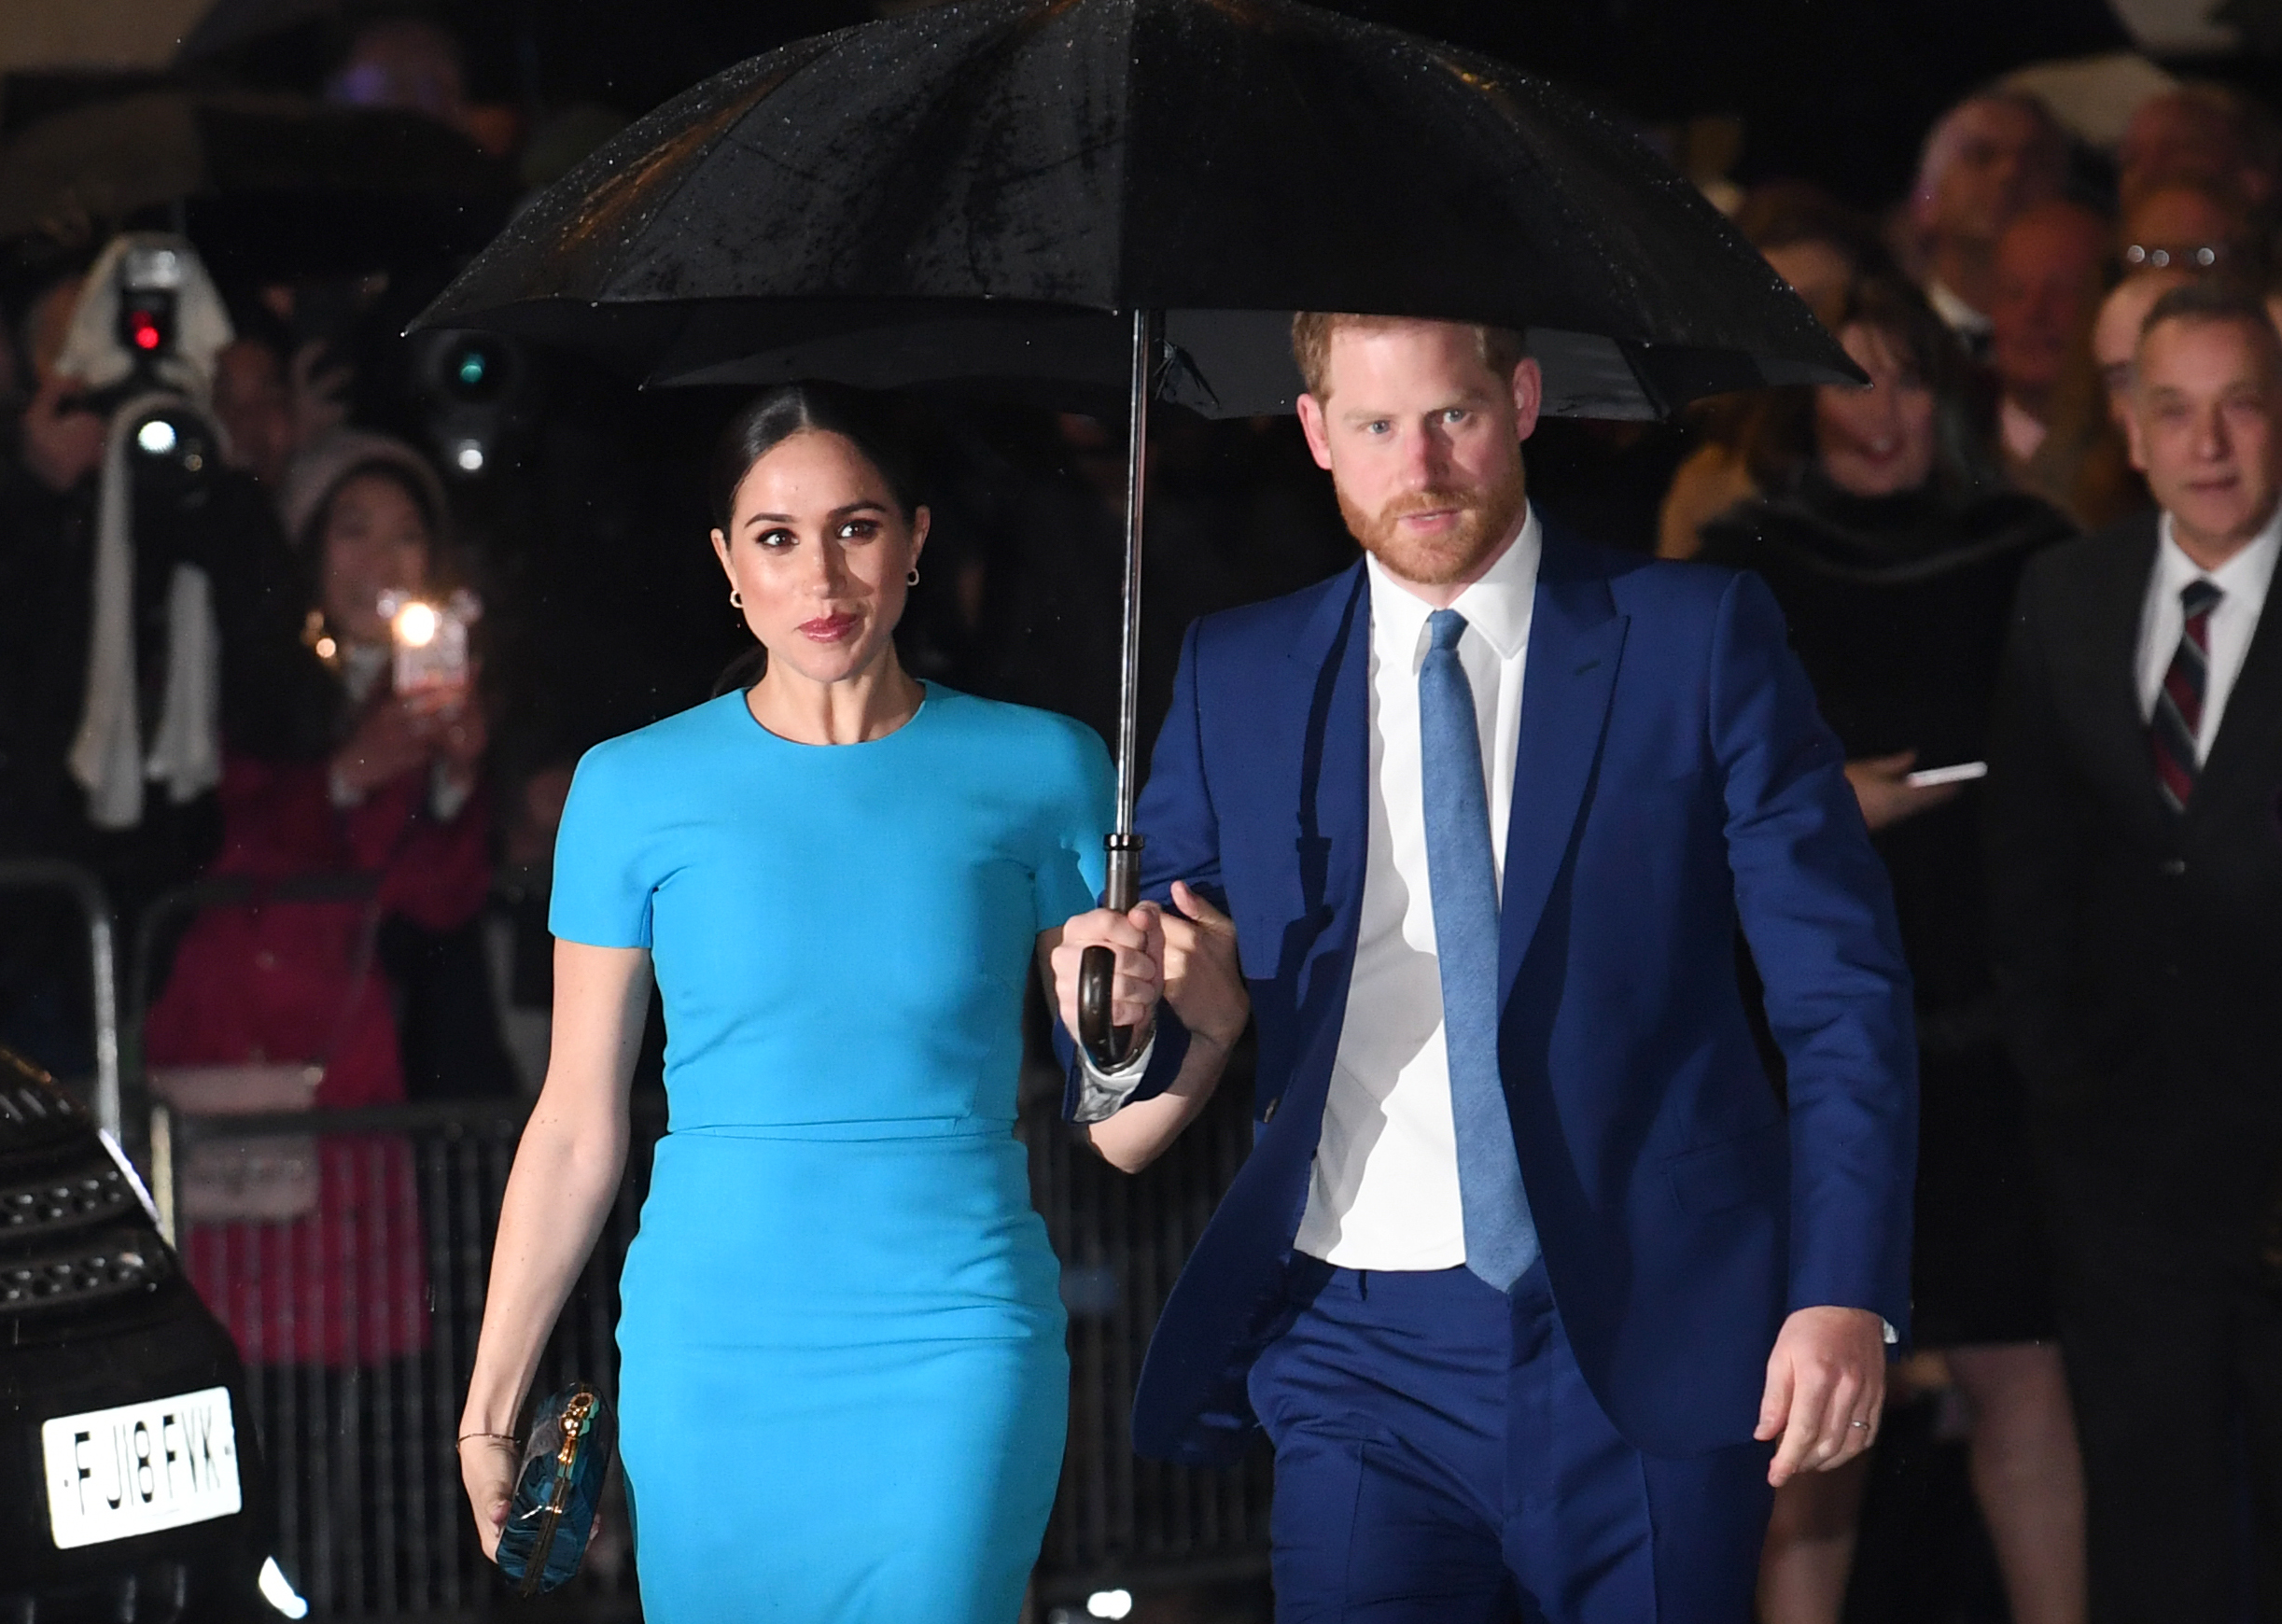 Prince Harry and Meghan Markle are set to make millions with Netflix (Credit: SplashNews)